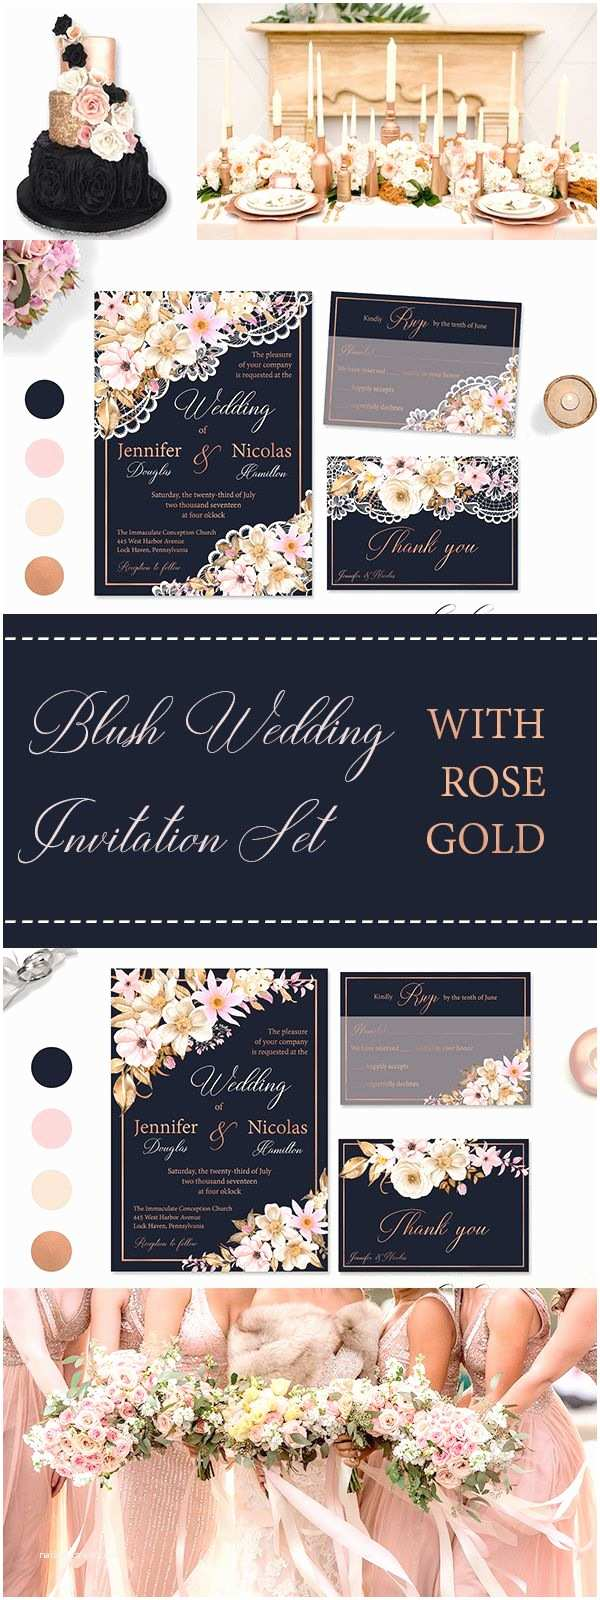 Navy Blue and Rose Gold Wedding Invitations Best 25 Rose Gold Weddings Ideas On Pinterest